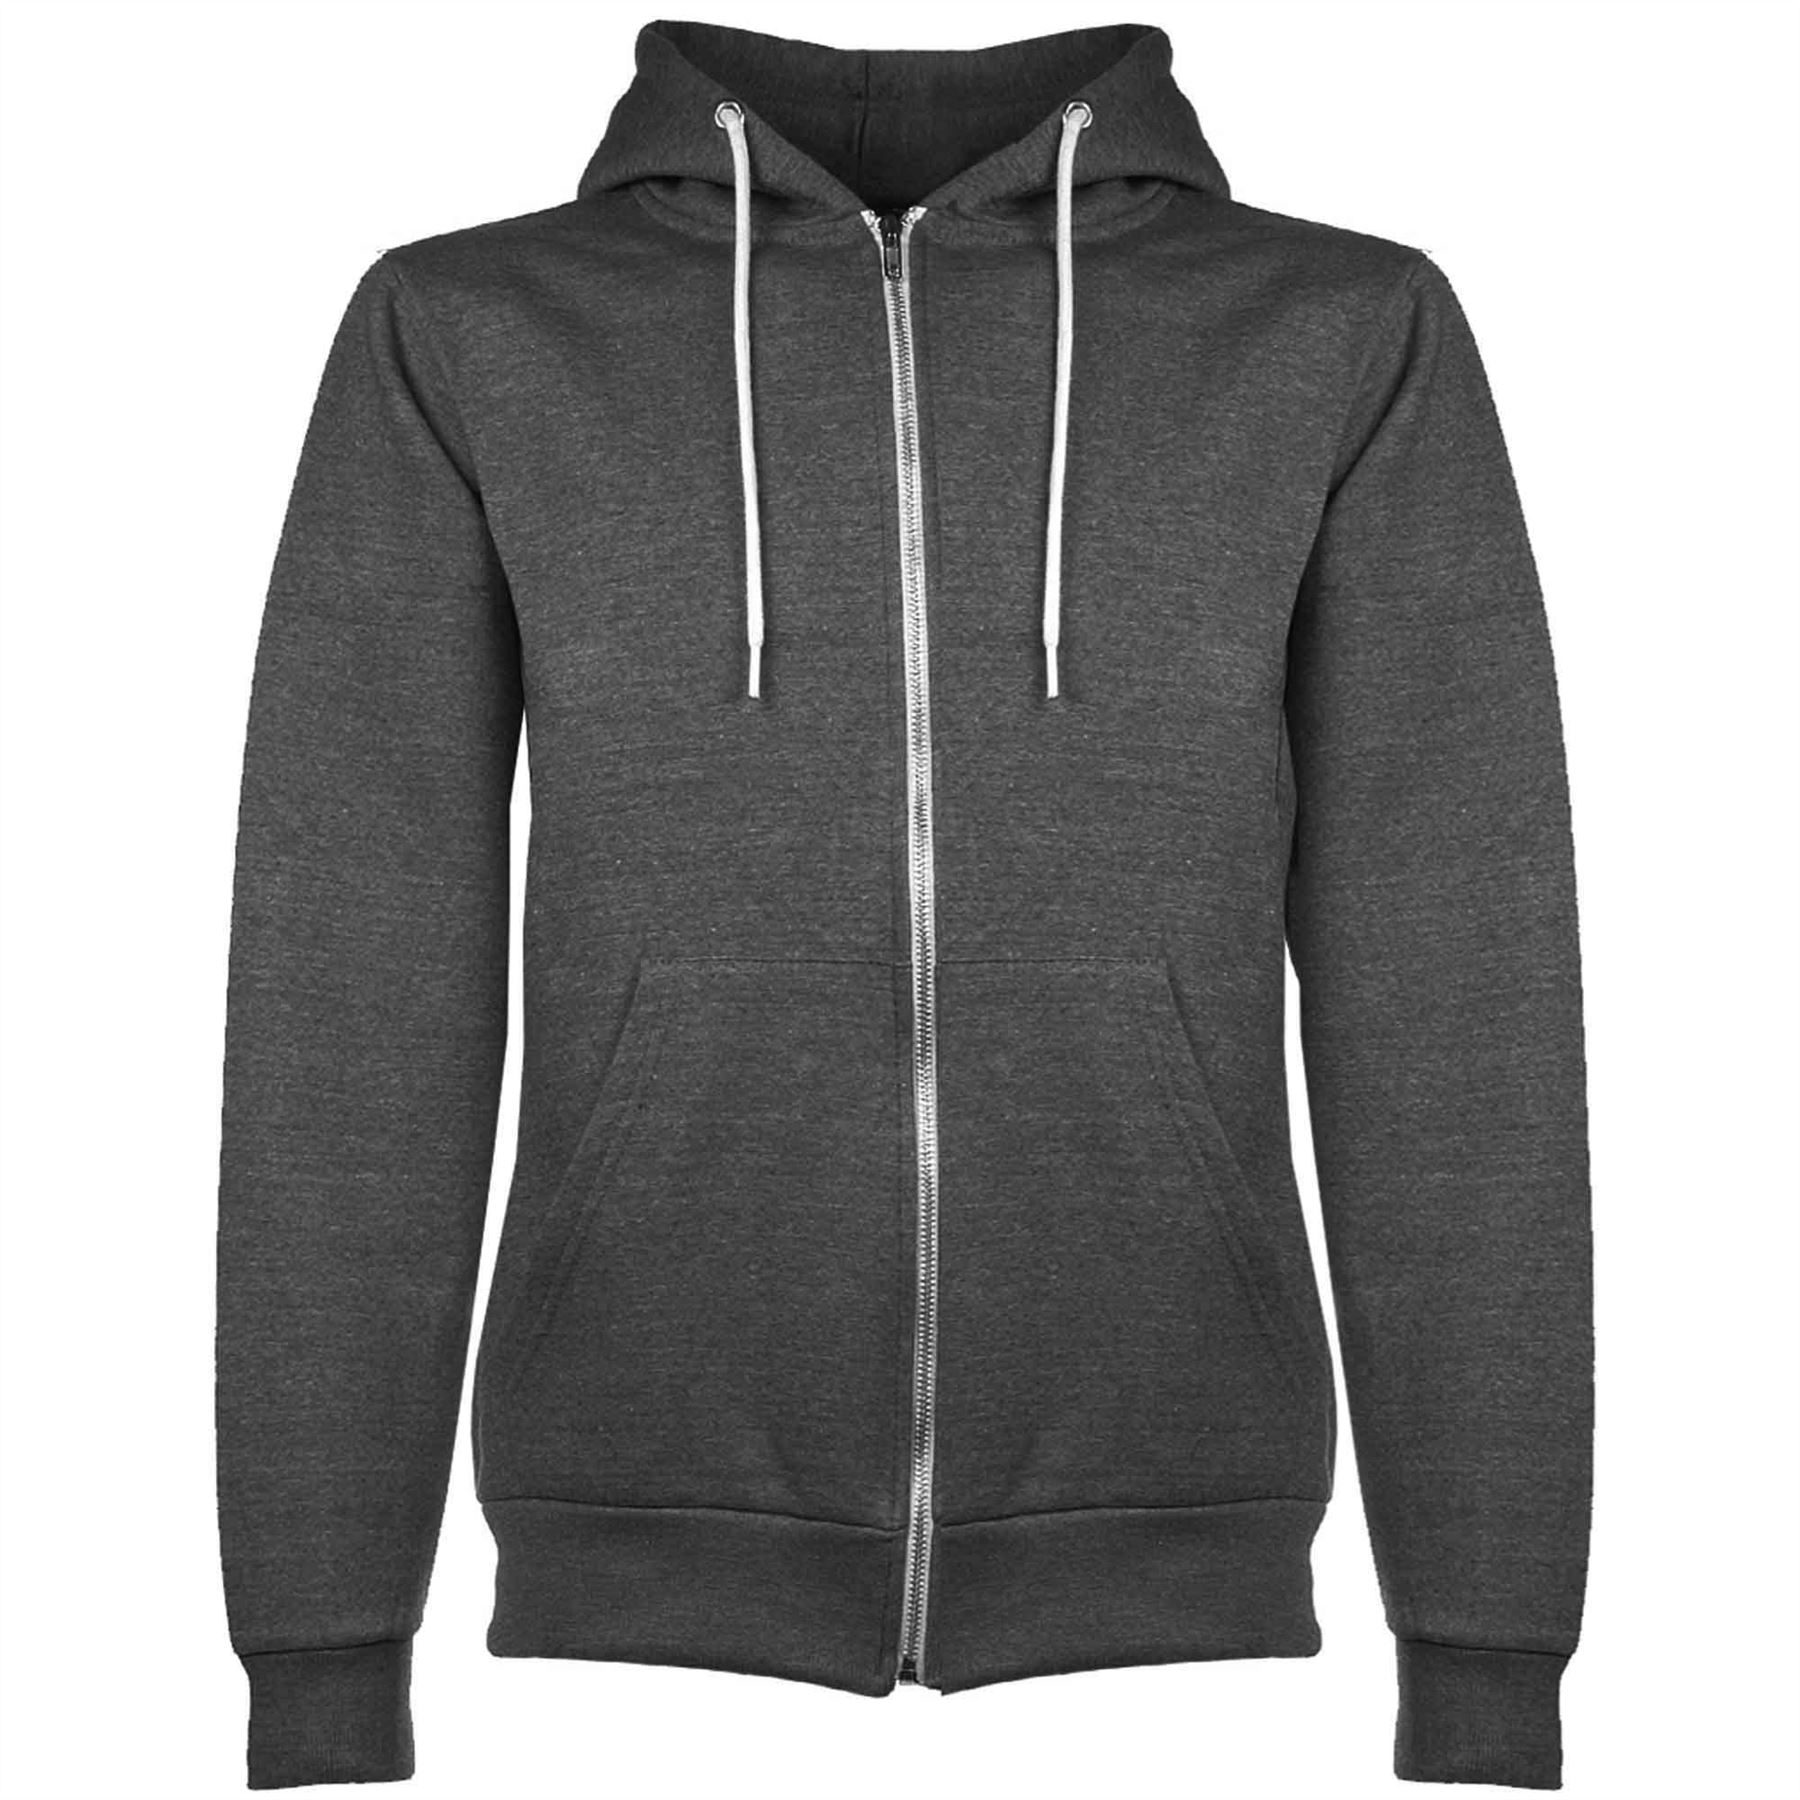 Shop for hooded sweatshirt jacket online at Target. Free shipping on purchases over $35 and save 5% every day with your Target REDcard.